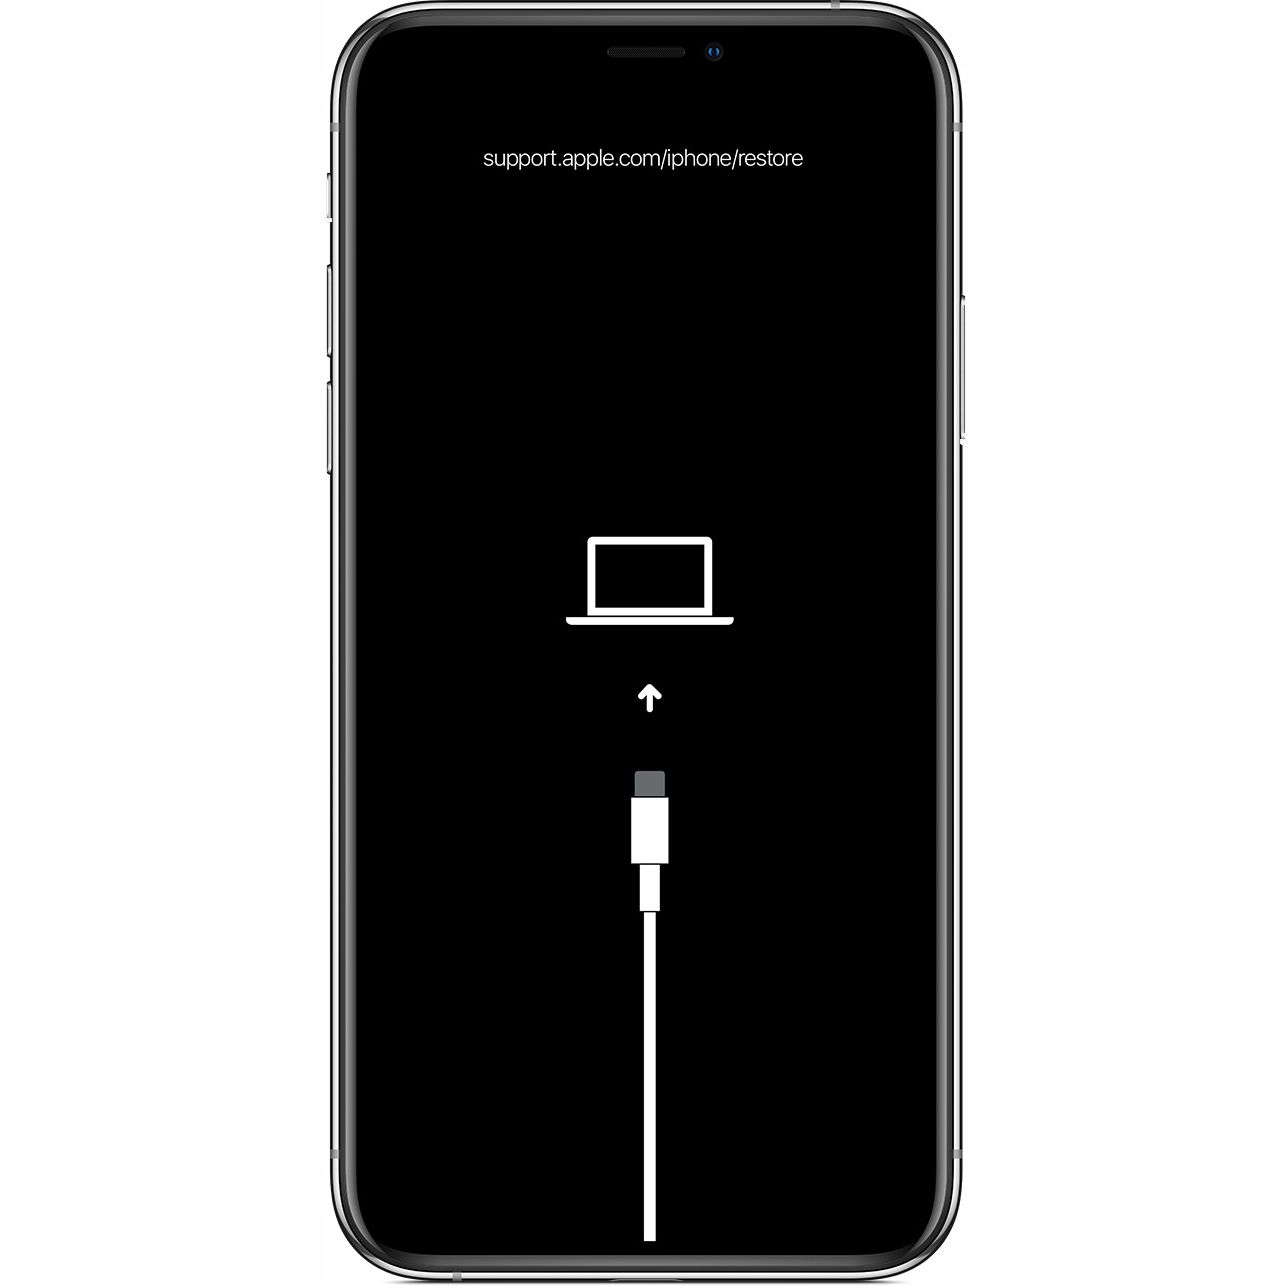 iPhone Recovery Mode icon